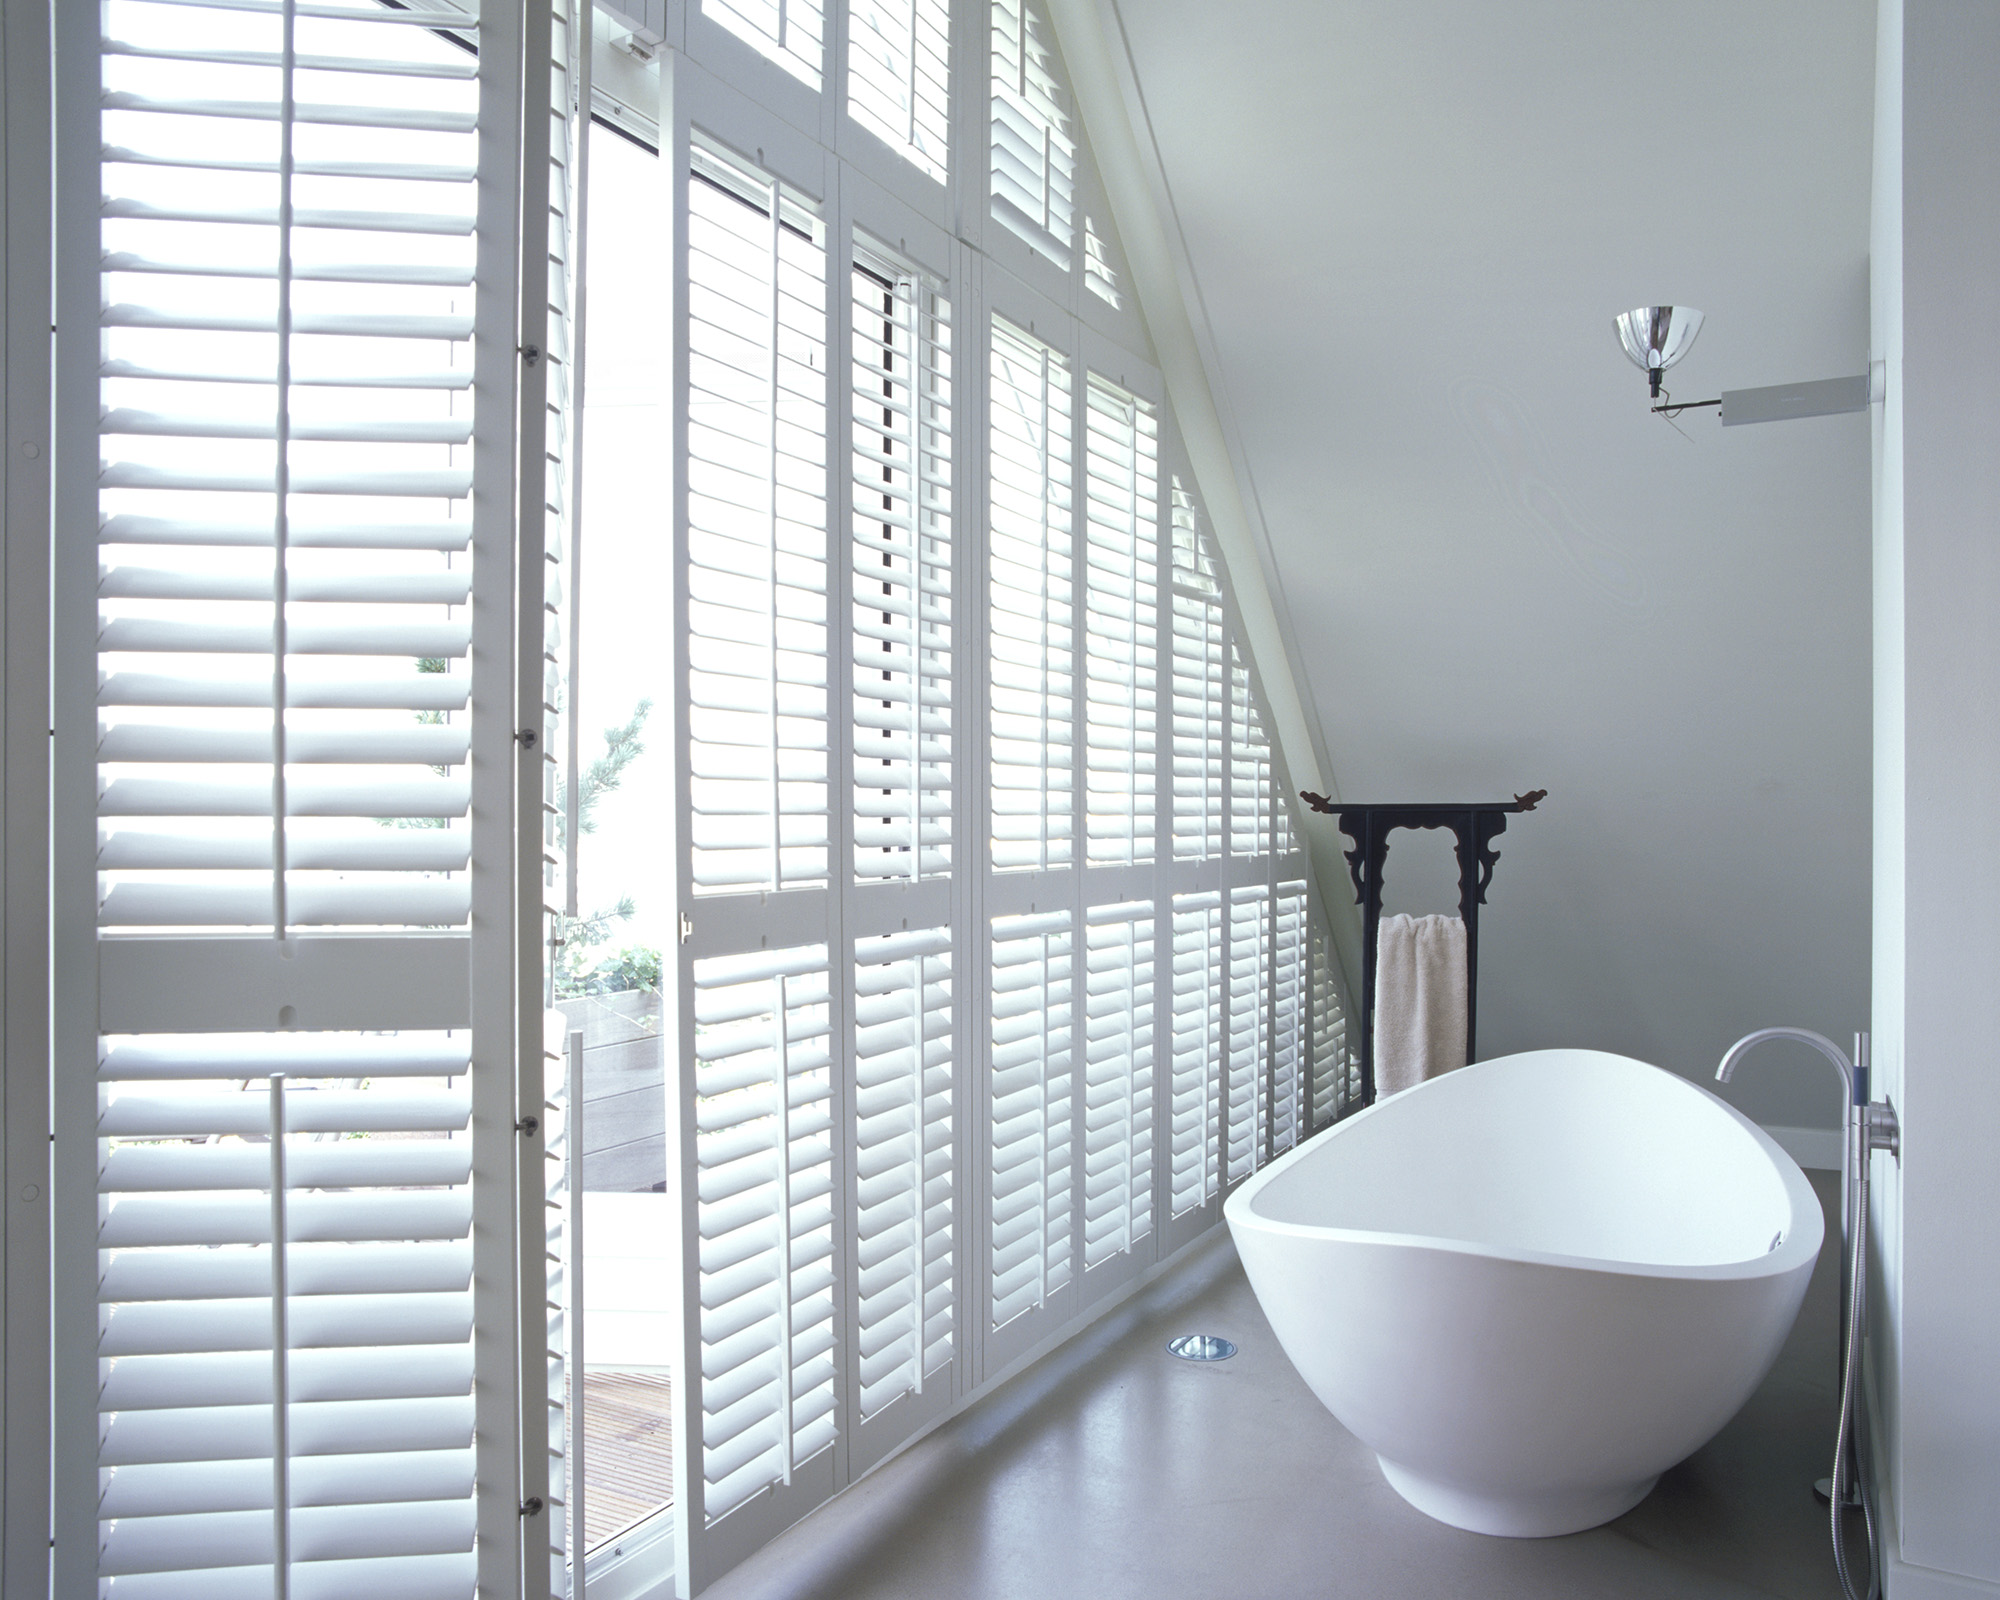 Special Shape Window Shutters Blinds For Unusual Shaped